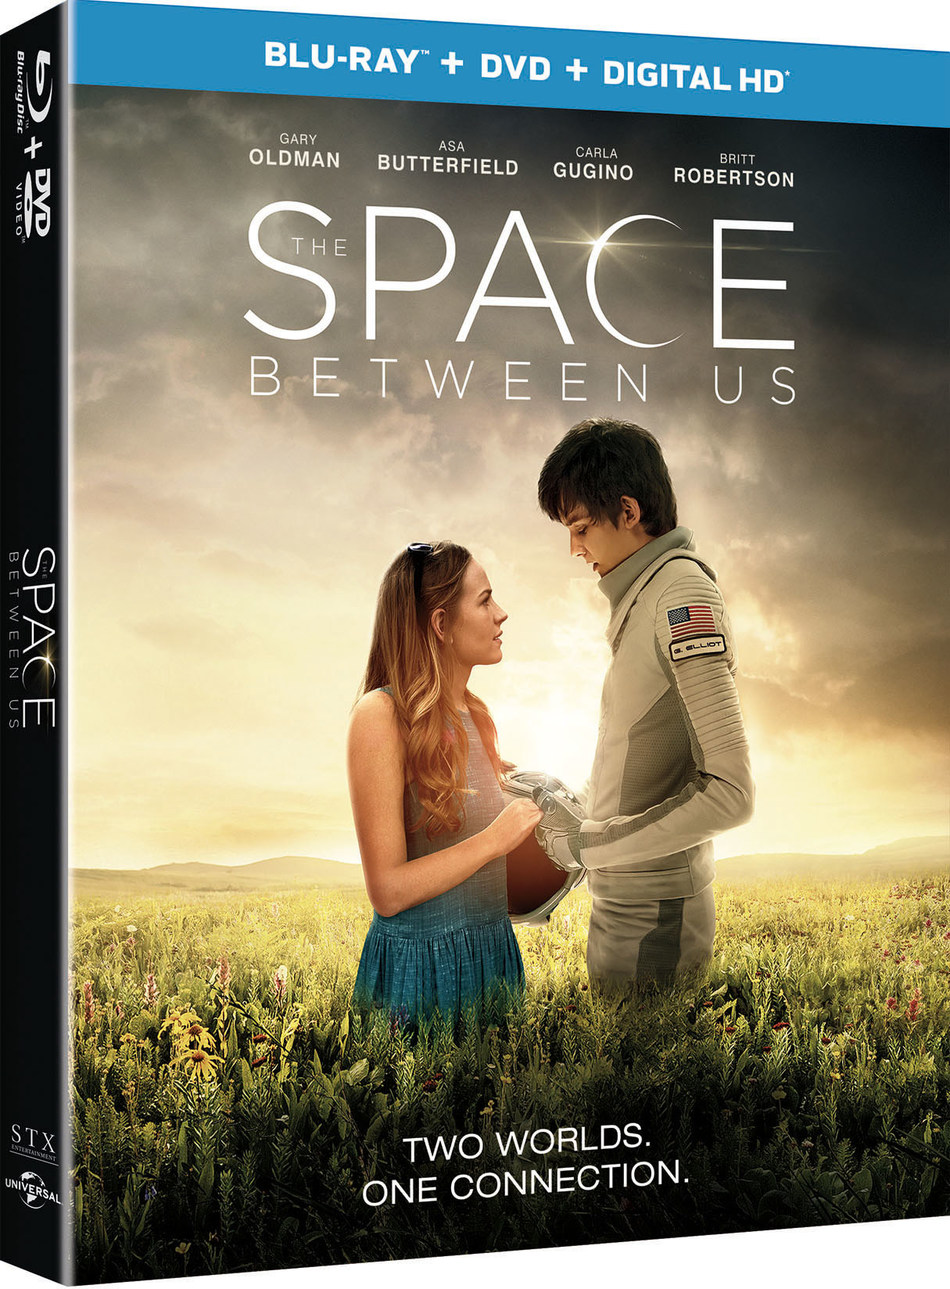 From Universal Pictures Home Entertainment: The Space Between Us